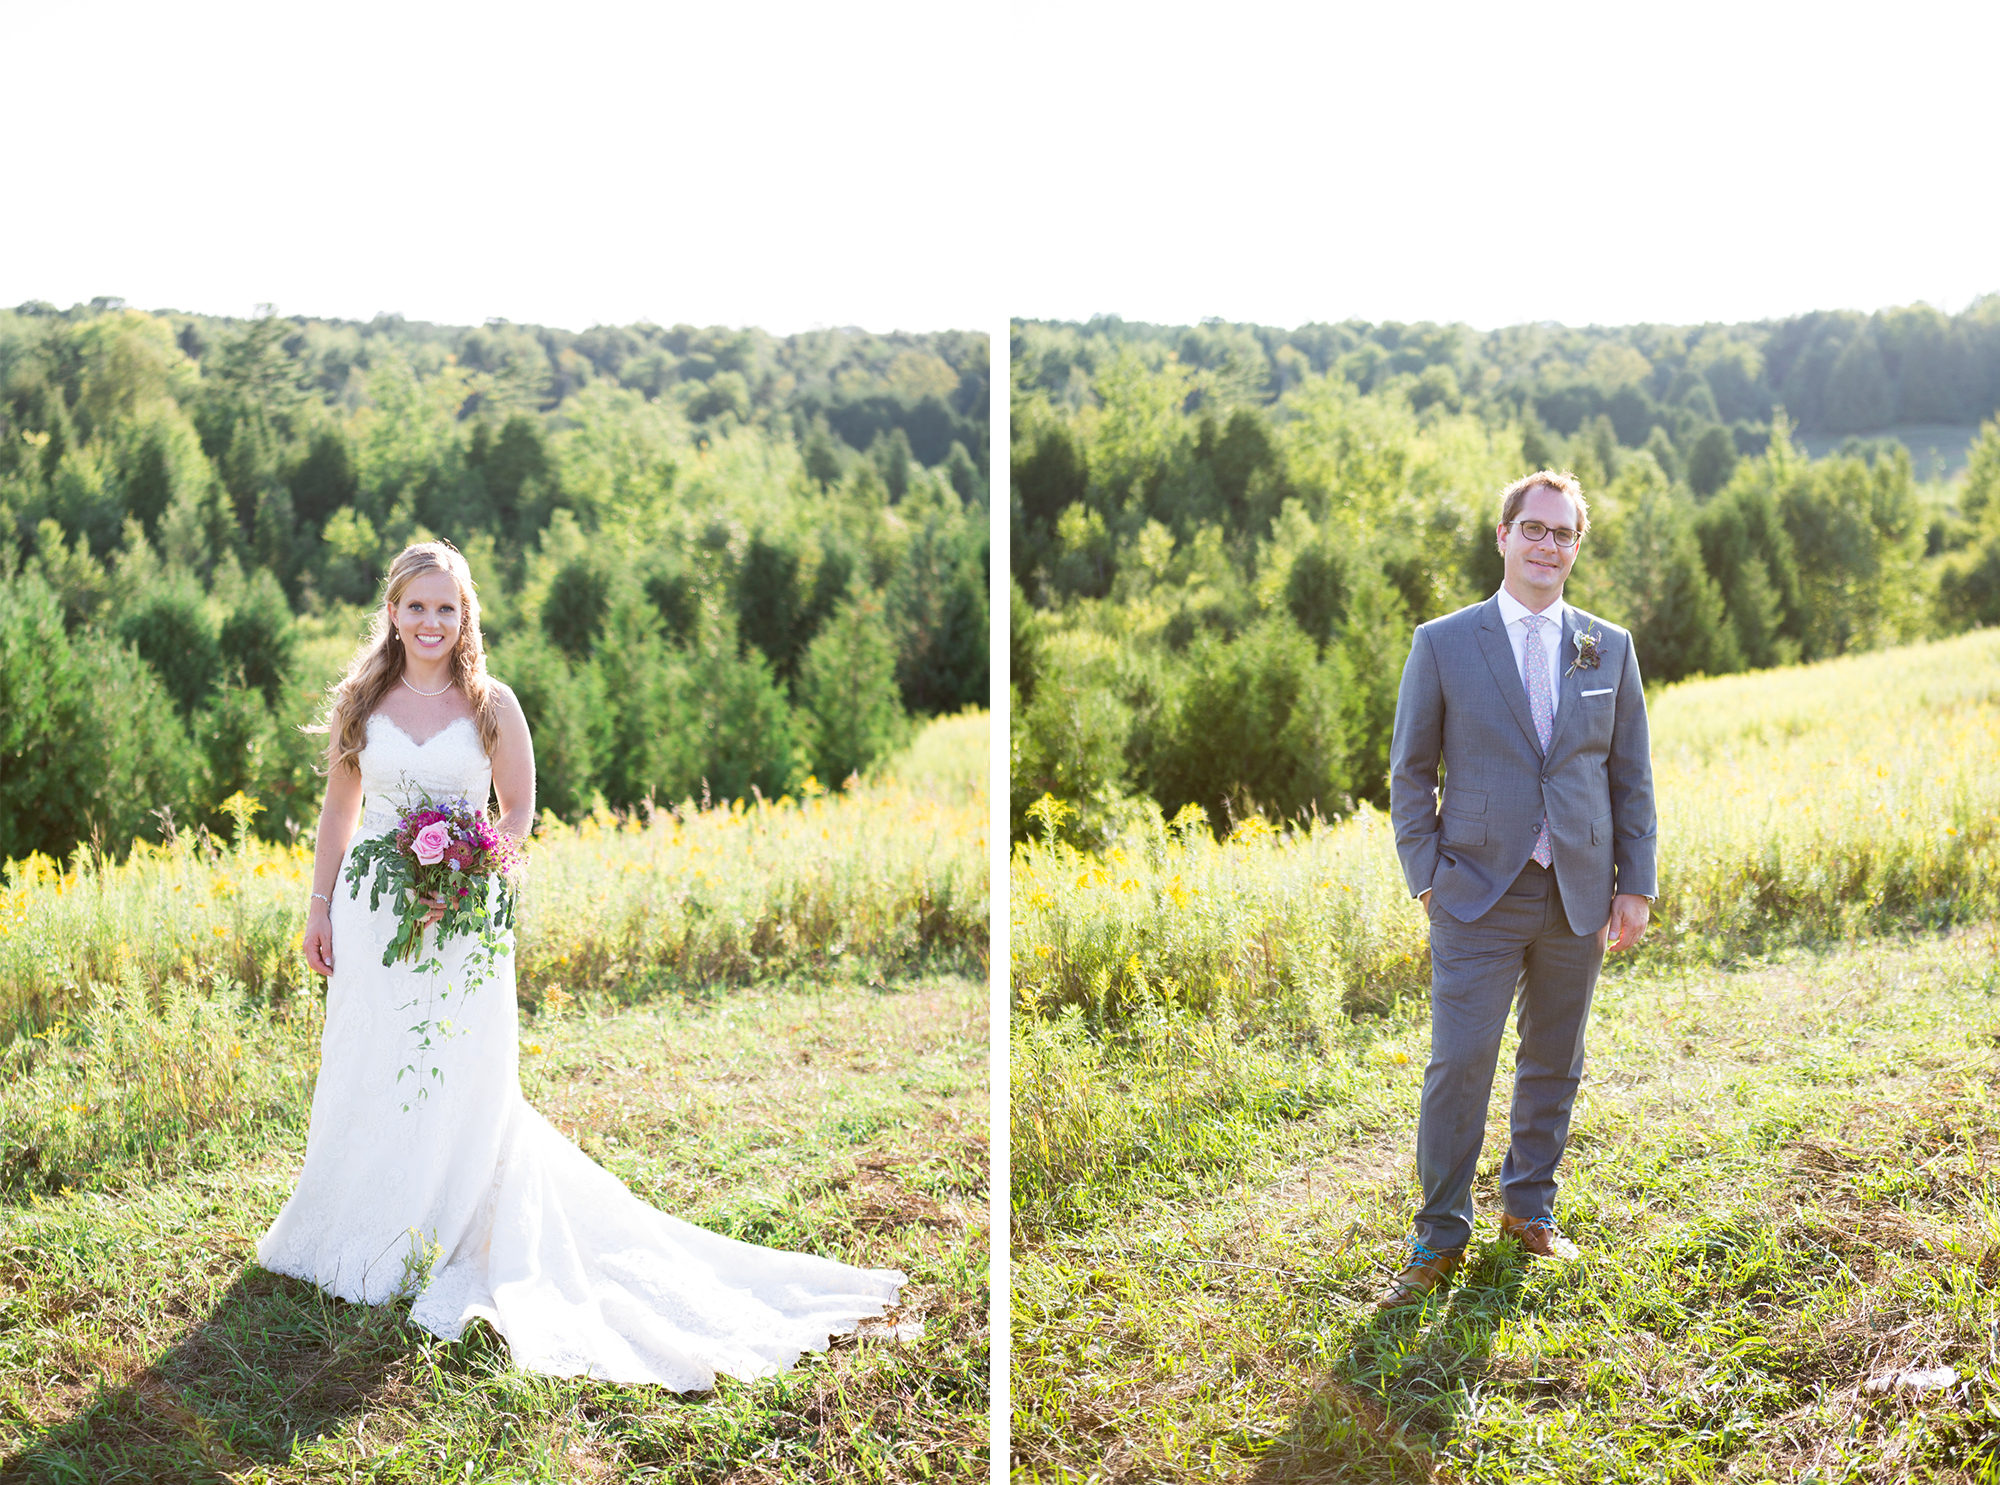 Bride Groom South Pond Farms Zsuzsi Pal Photography Wedding